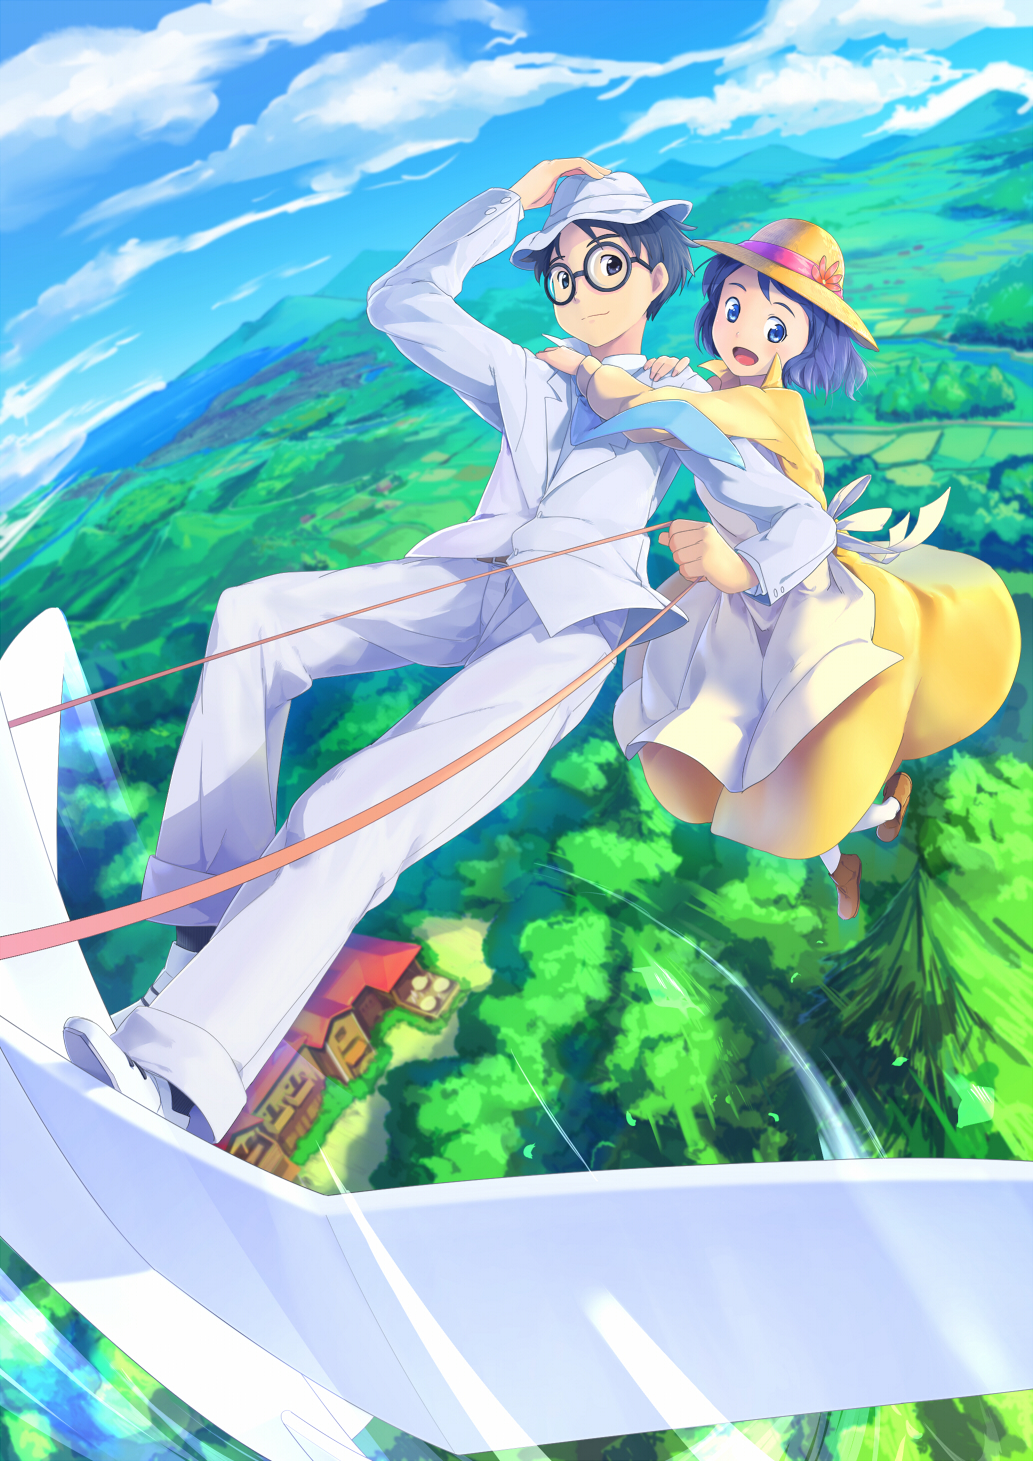 Pretty Girl Wallpaper Full Hd Kaze Tachinu The Wind Rises Zerochan Anime Image Board